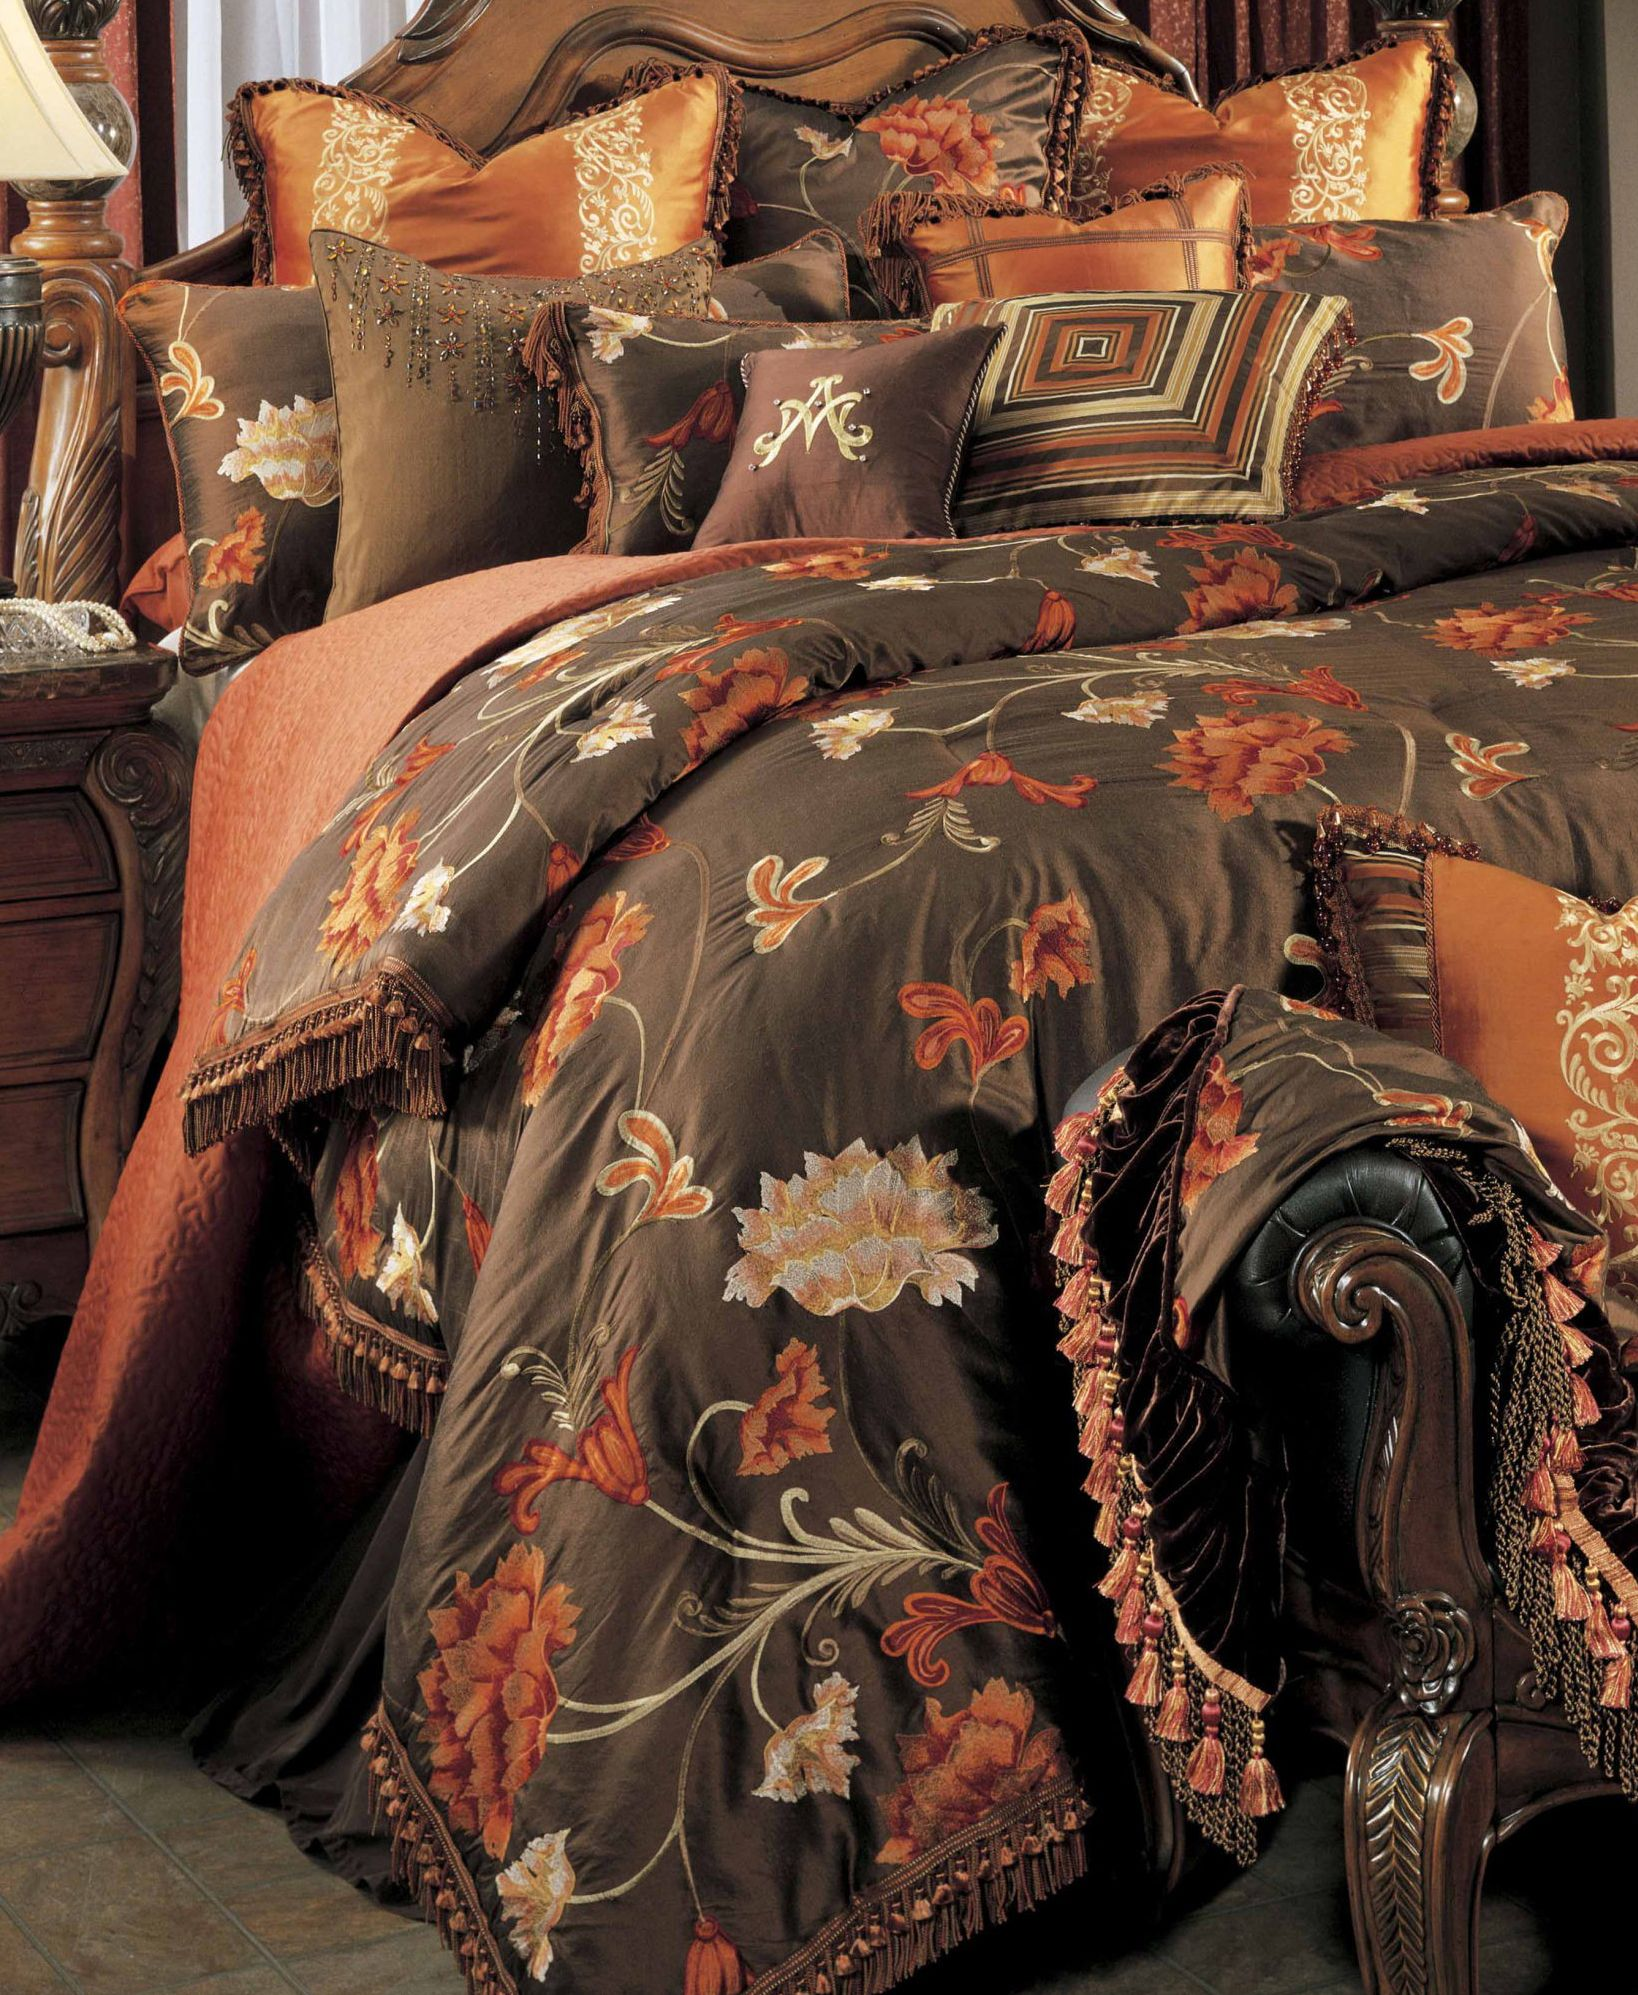 Bed And Bath Stunning Home Decor Amp Design Queen